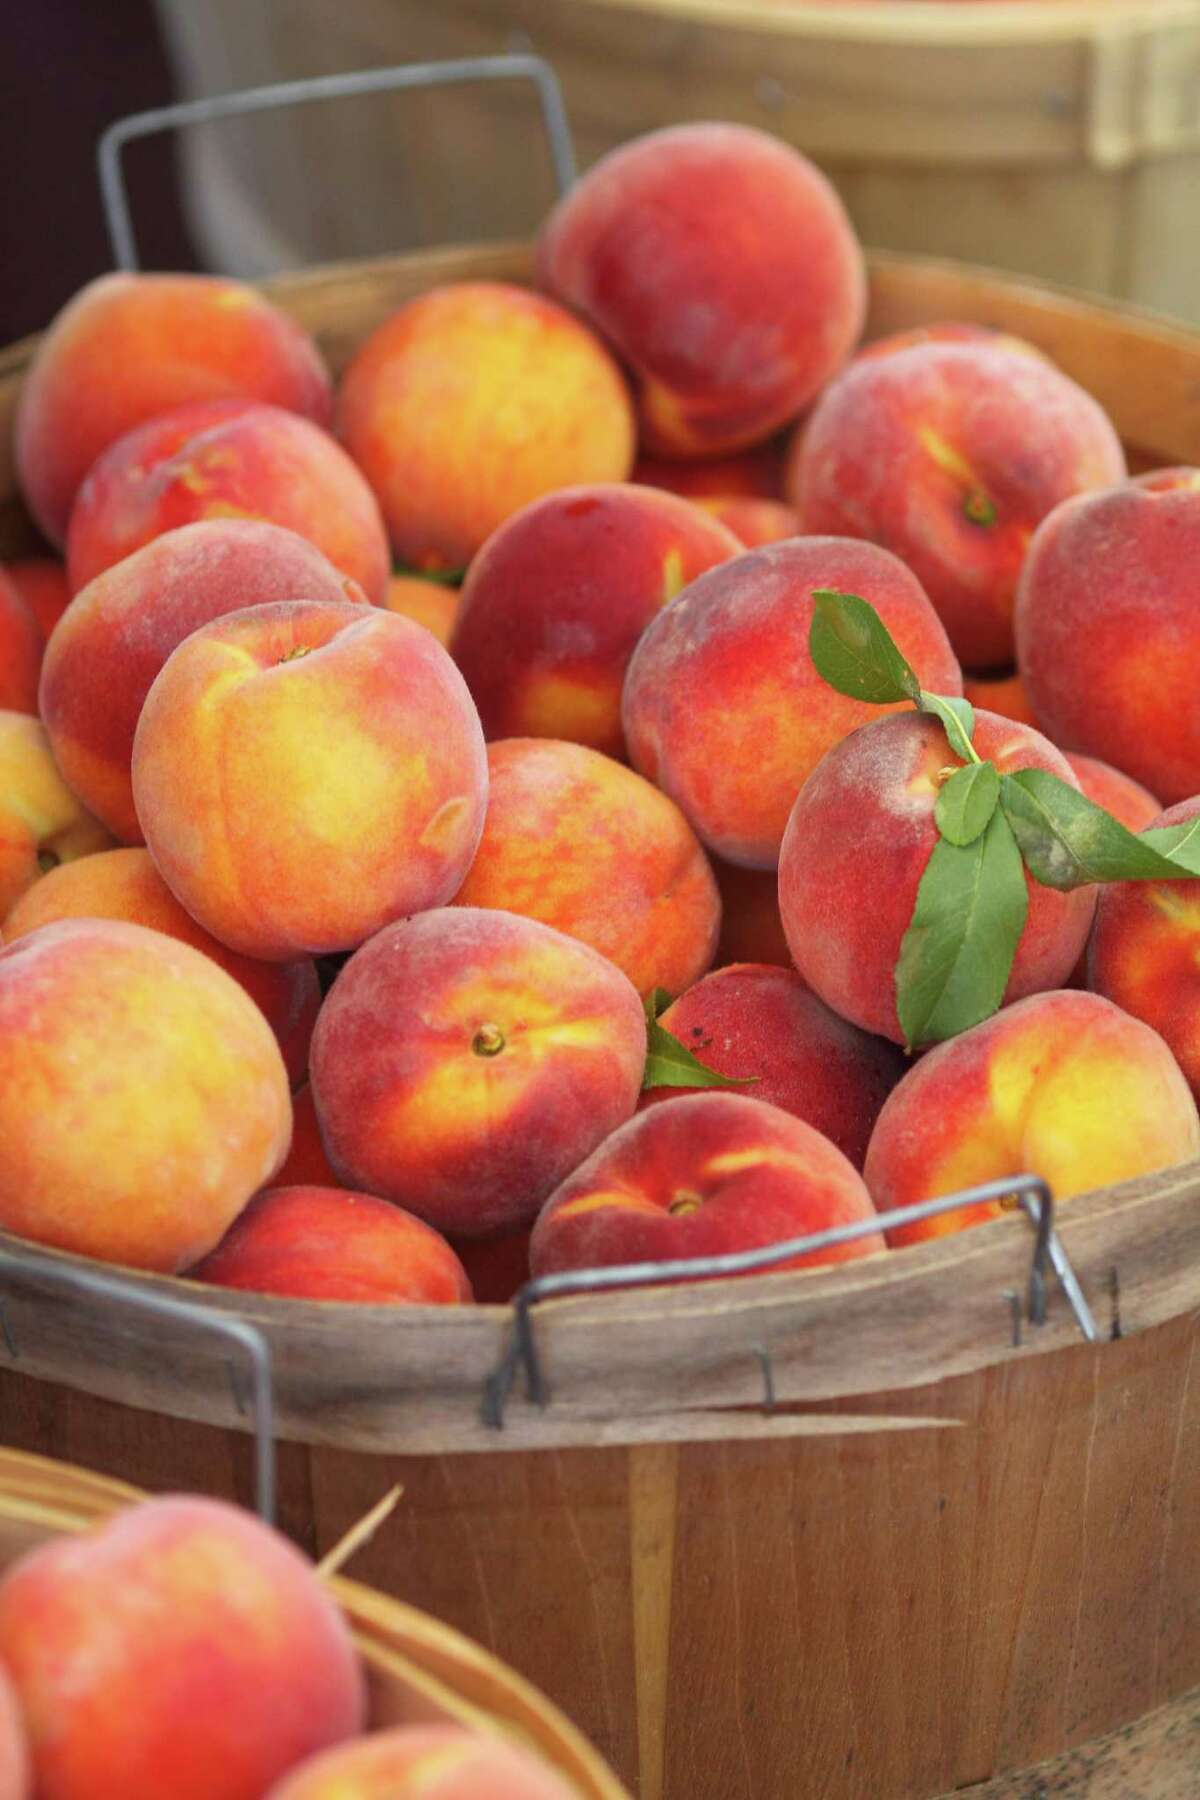 Summer peaches are great for popsicles.